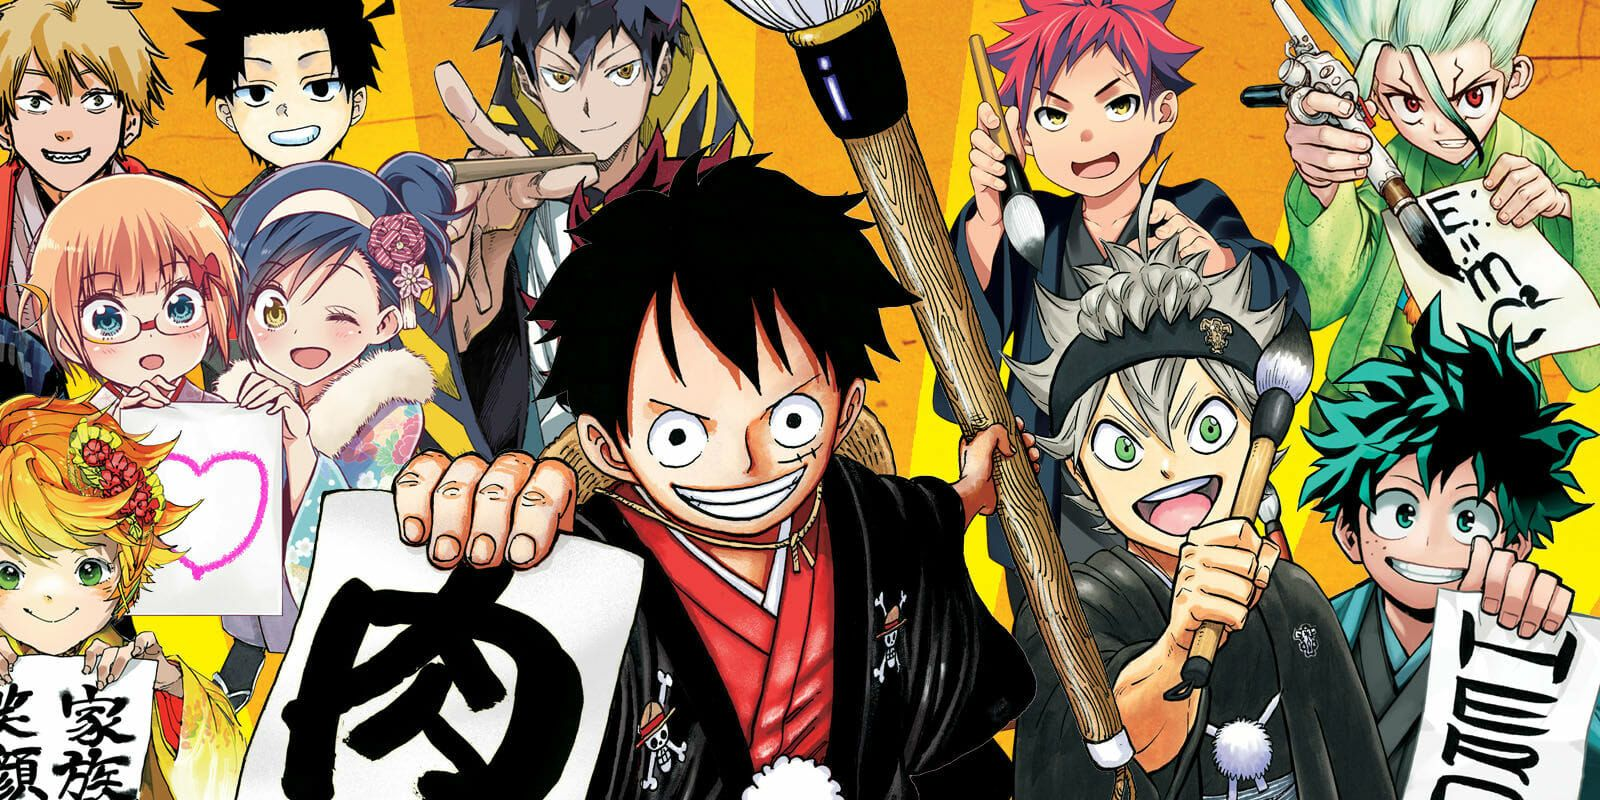 Shonen Jump's Future After One Piece & My Hero Academia End